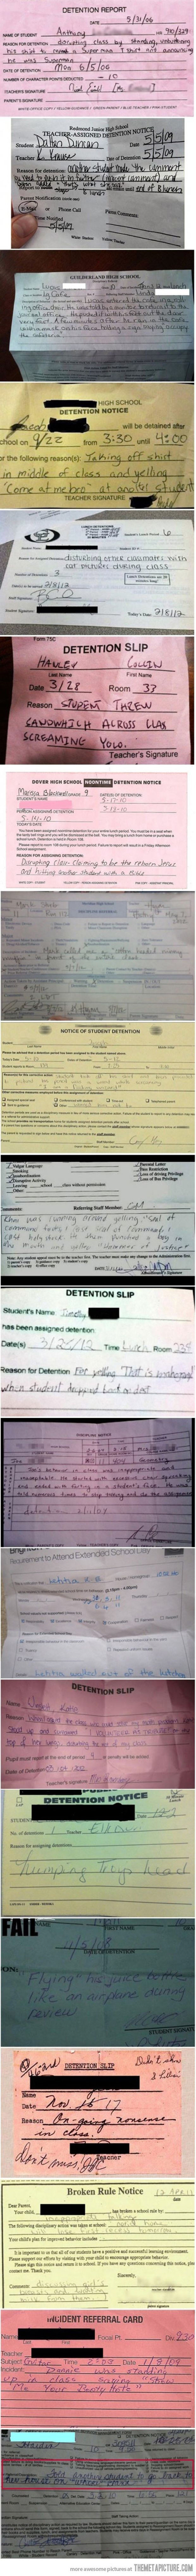 funny detention slips- the Anchor man quote & Jesus one...lol